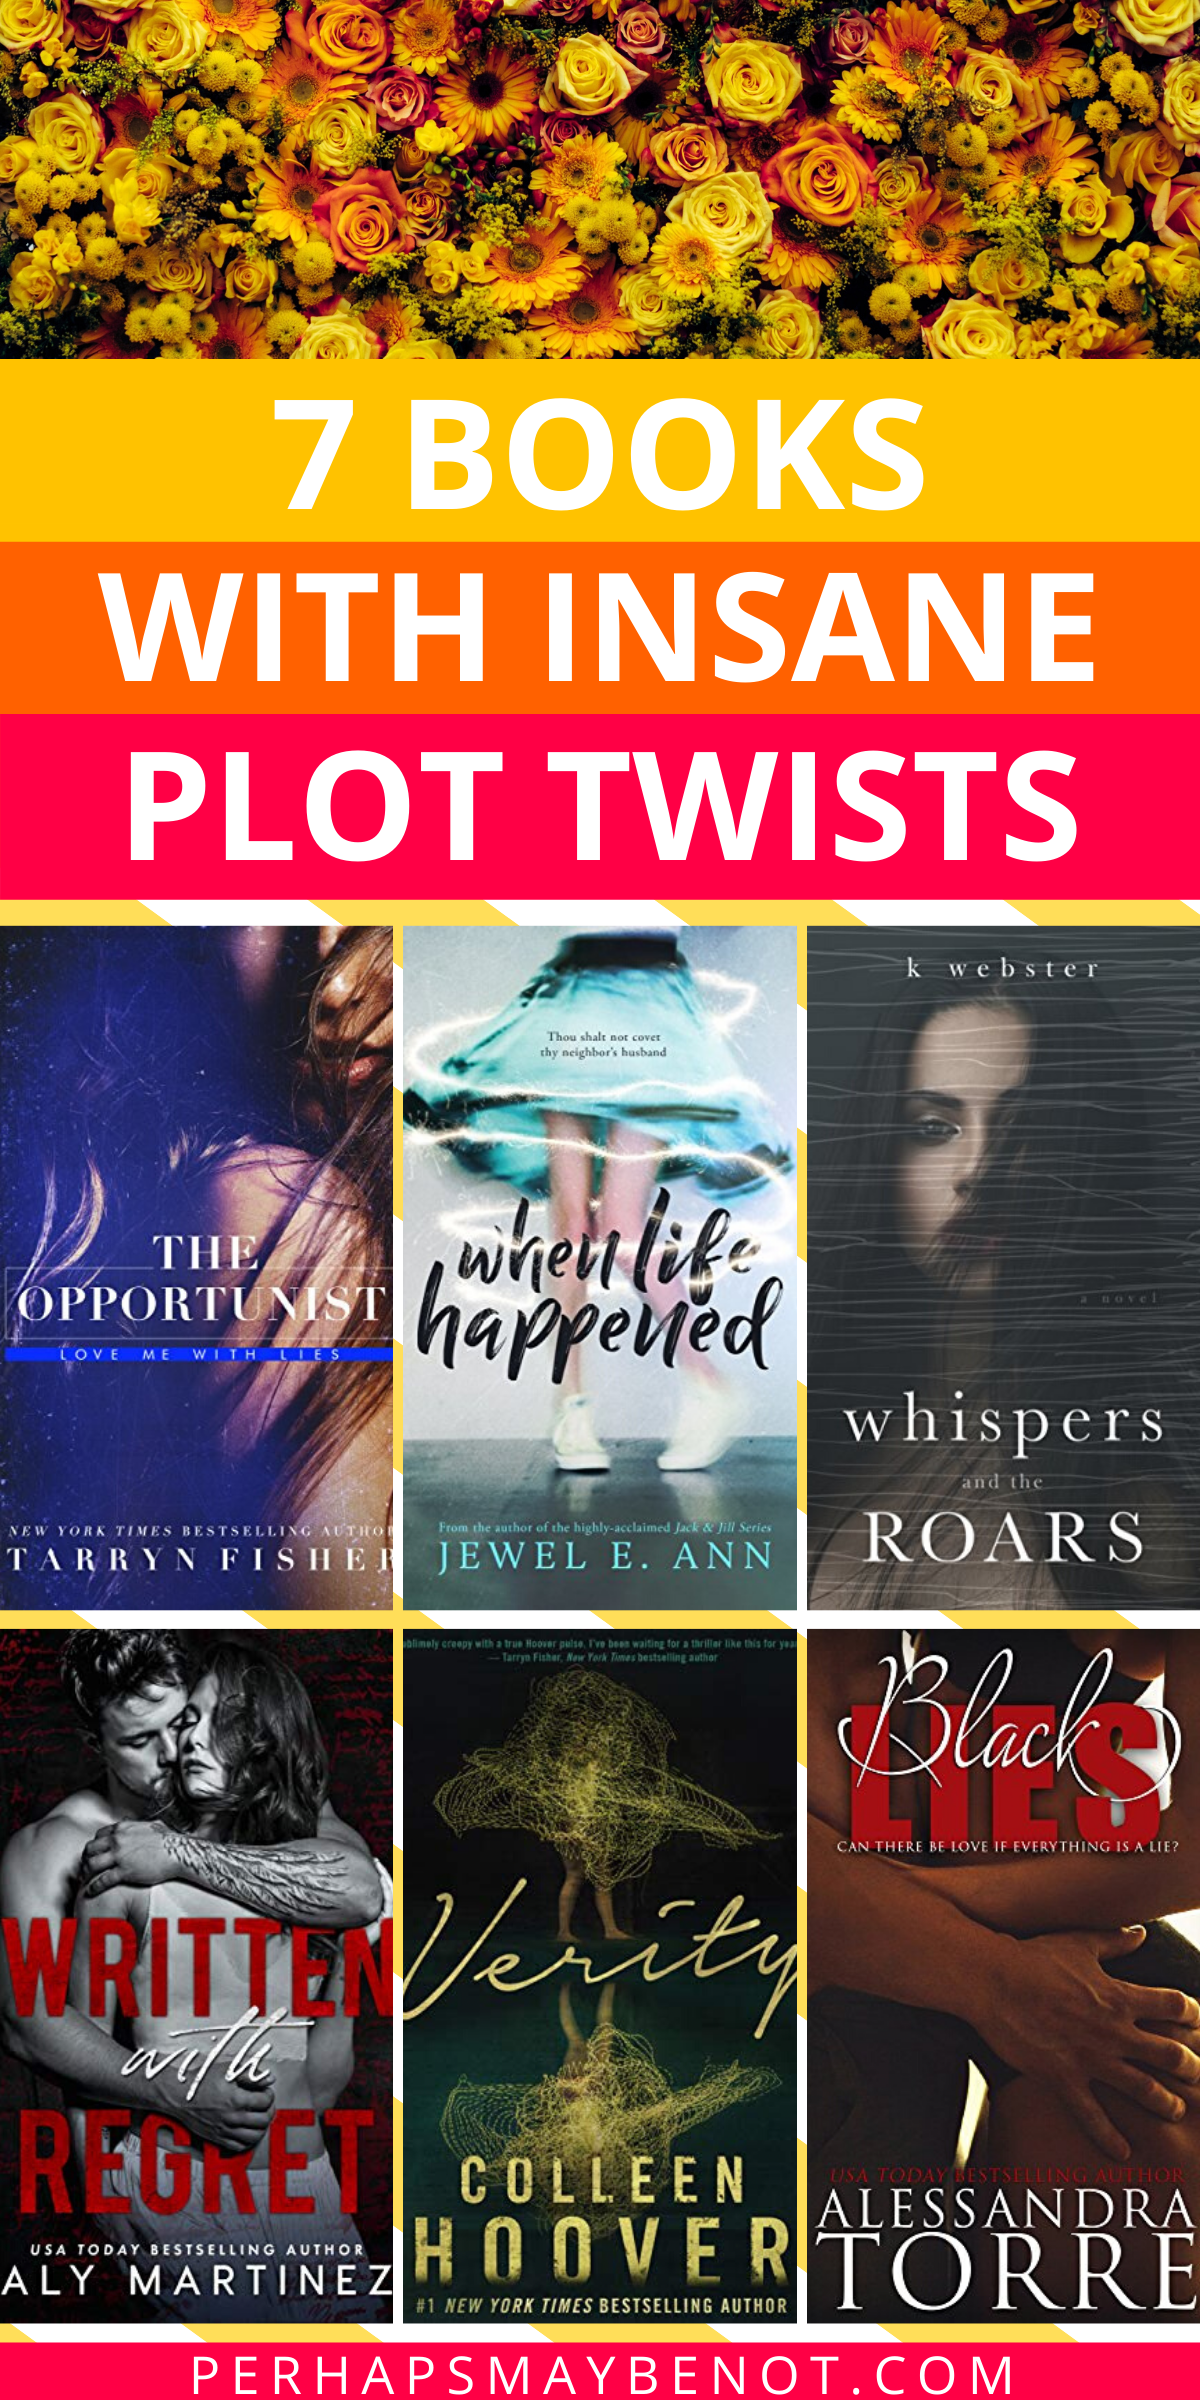 If you want to be surprised, these 7 books are perfect for you. They have some of the best plot twists in books that you'll never see coming. #booksworthreading #bestbooks #bestplottwists #plottwists #booklist #bookstoread